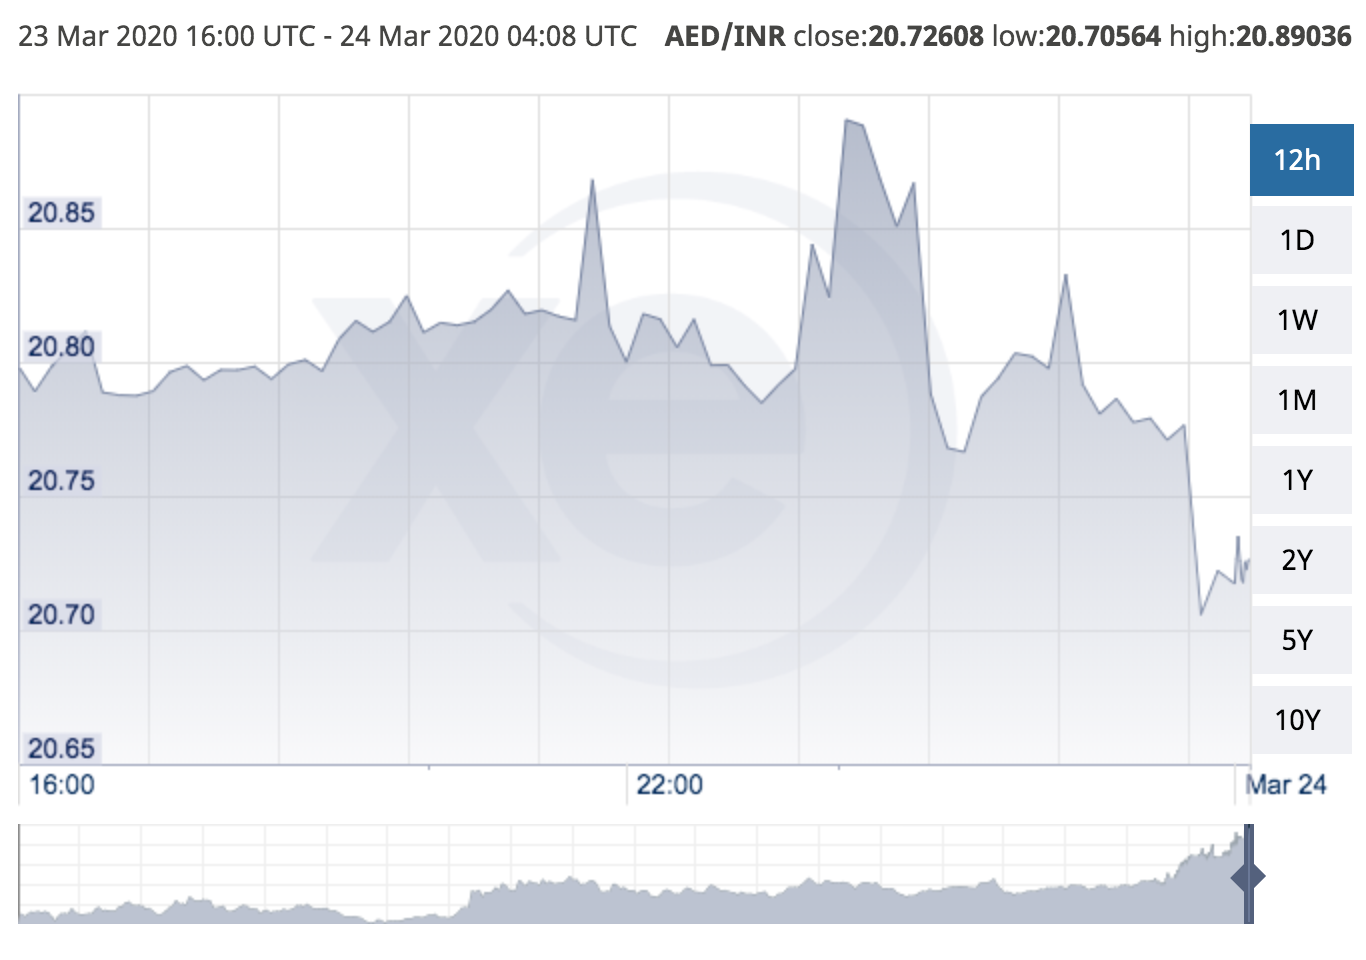 Indian rupee hits record low of 20.89 against UAE dirham (KT23706324.PNG)